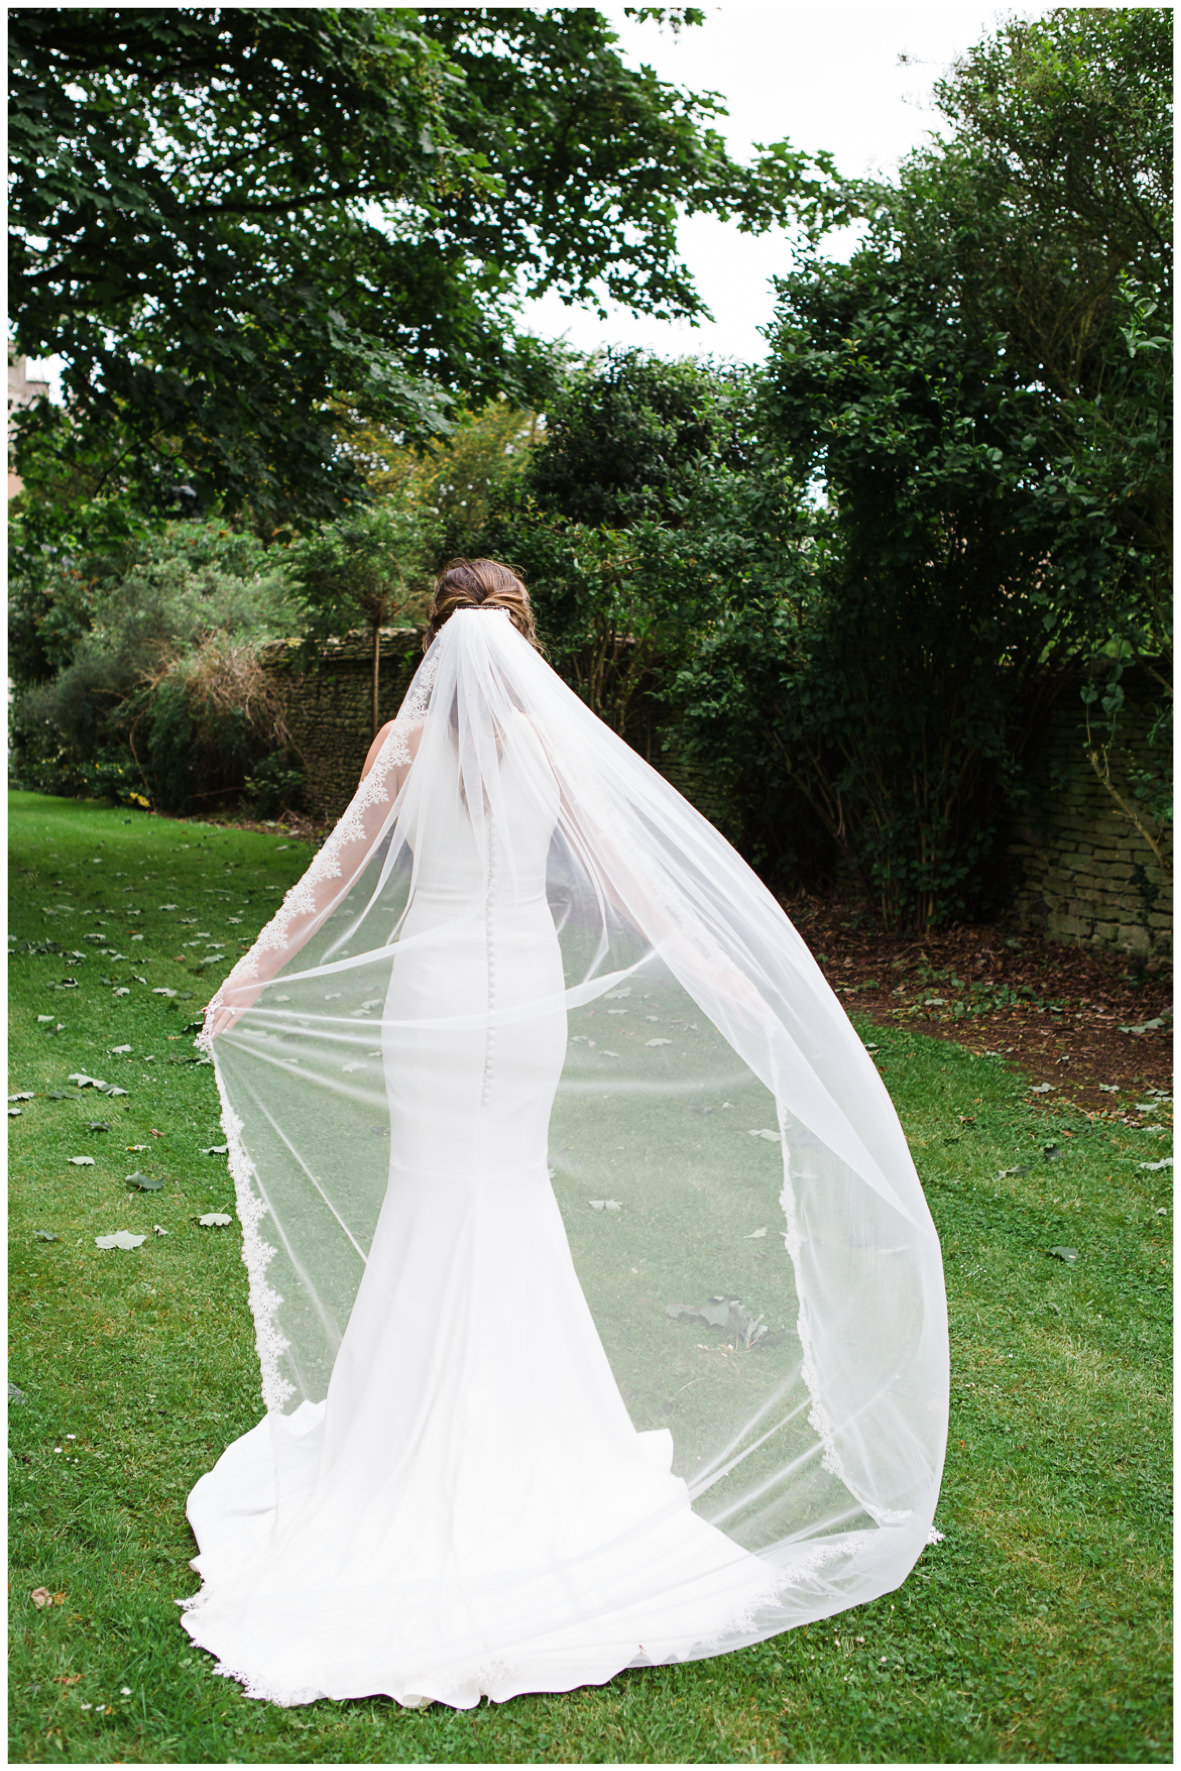 Lucy Davenport Photography, Aynhoe Park, Oxfordshire, wedding venue, Rock My Wedding, Orangery, bride cathedral length veil